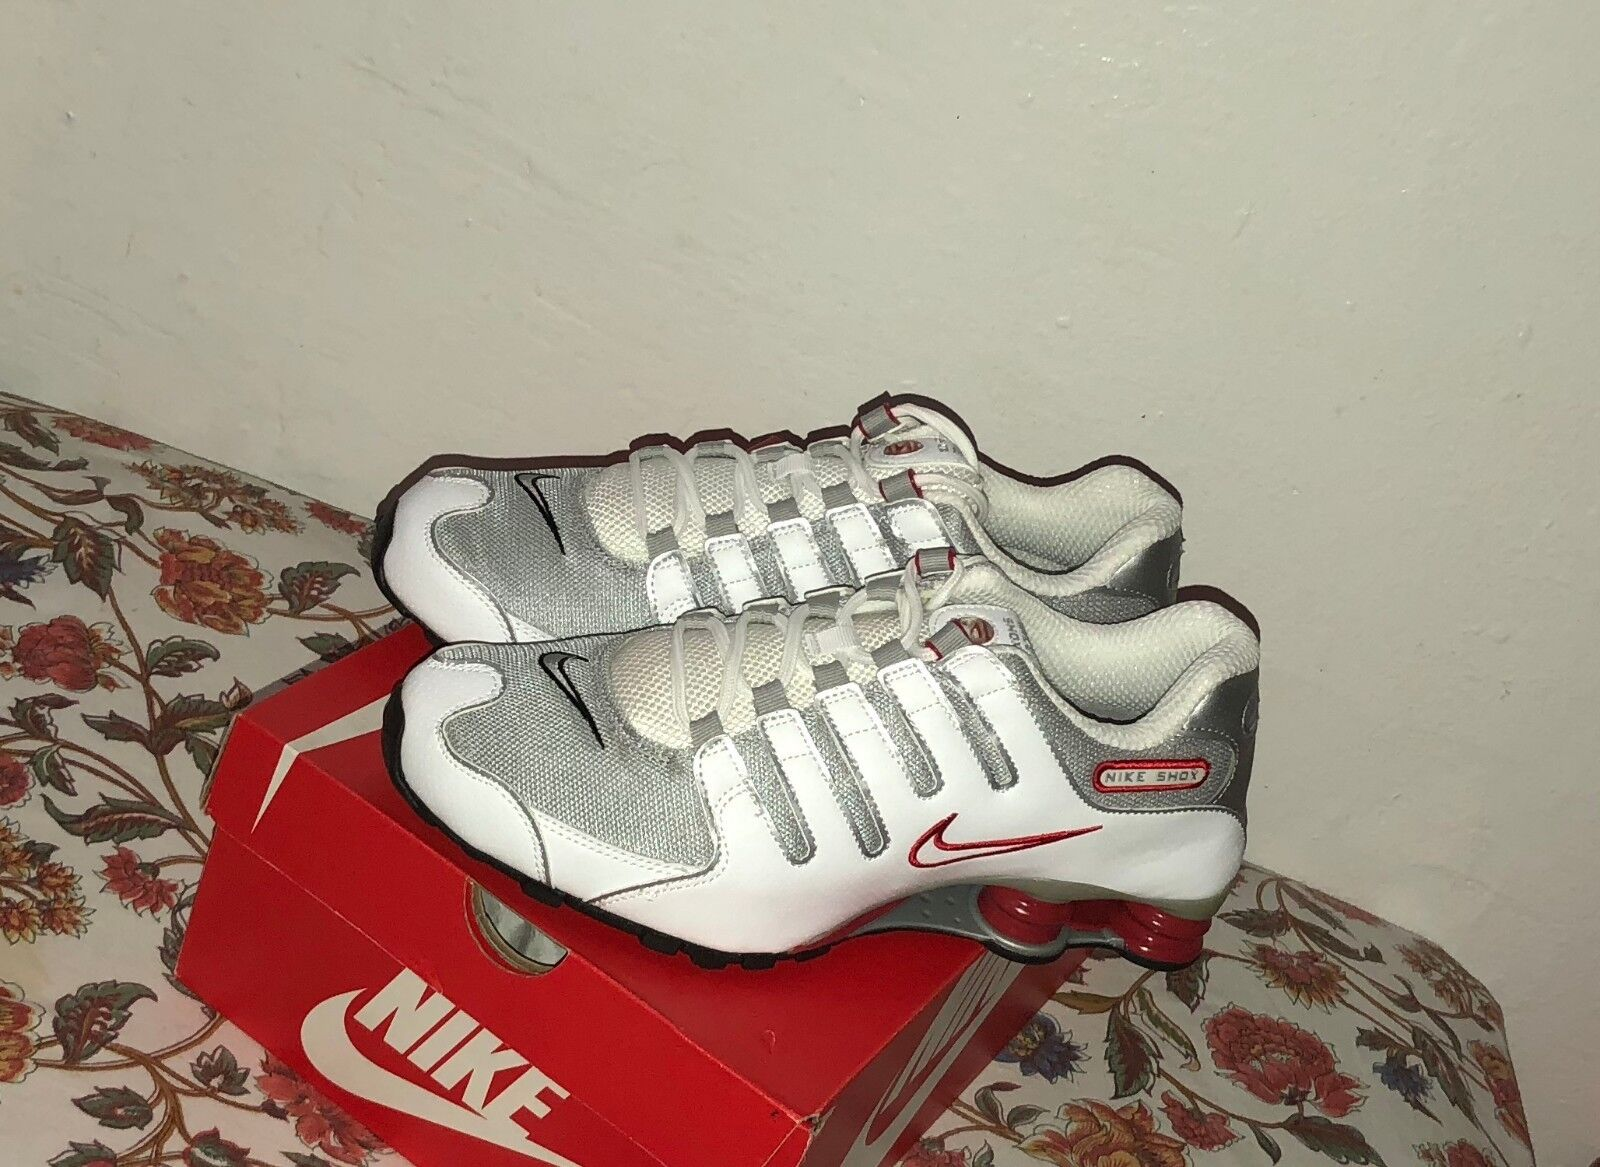 Nike Shox NZ Running Shoes White Red Platinum Silver Size 10.5 New